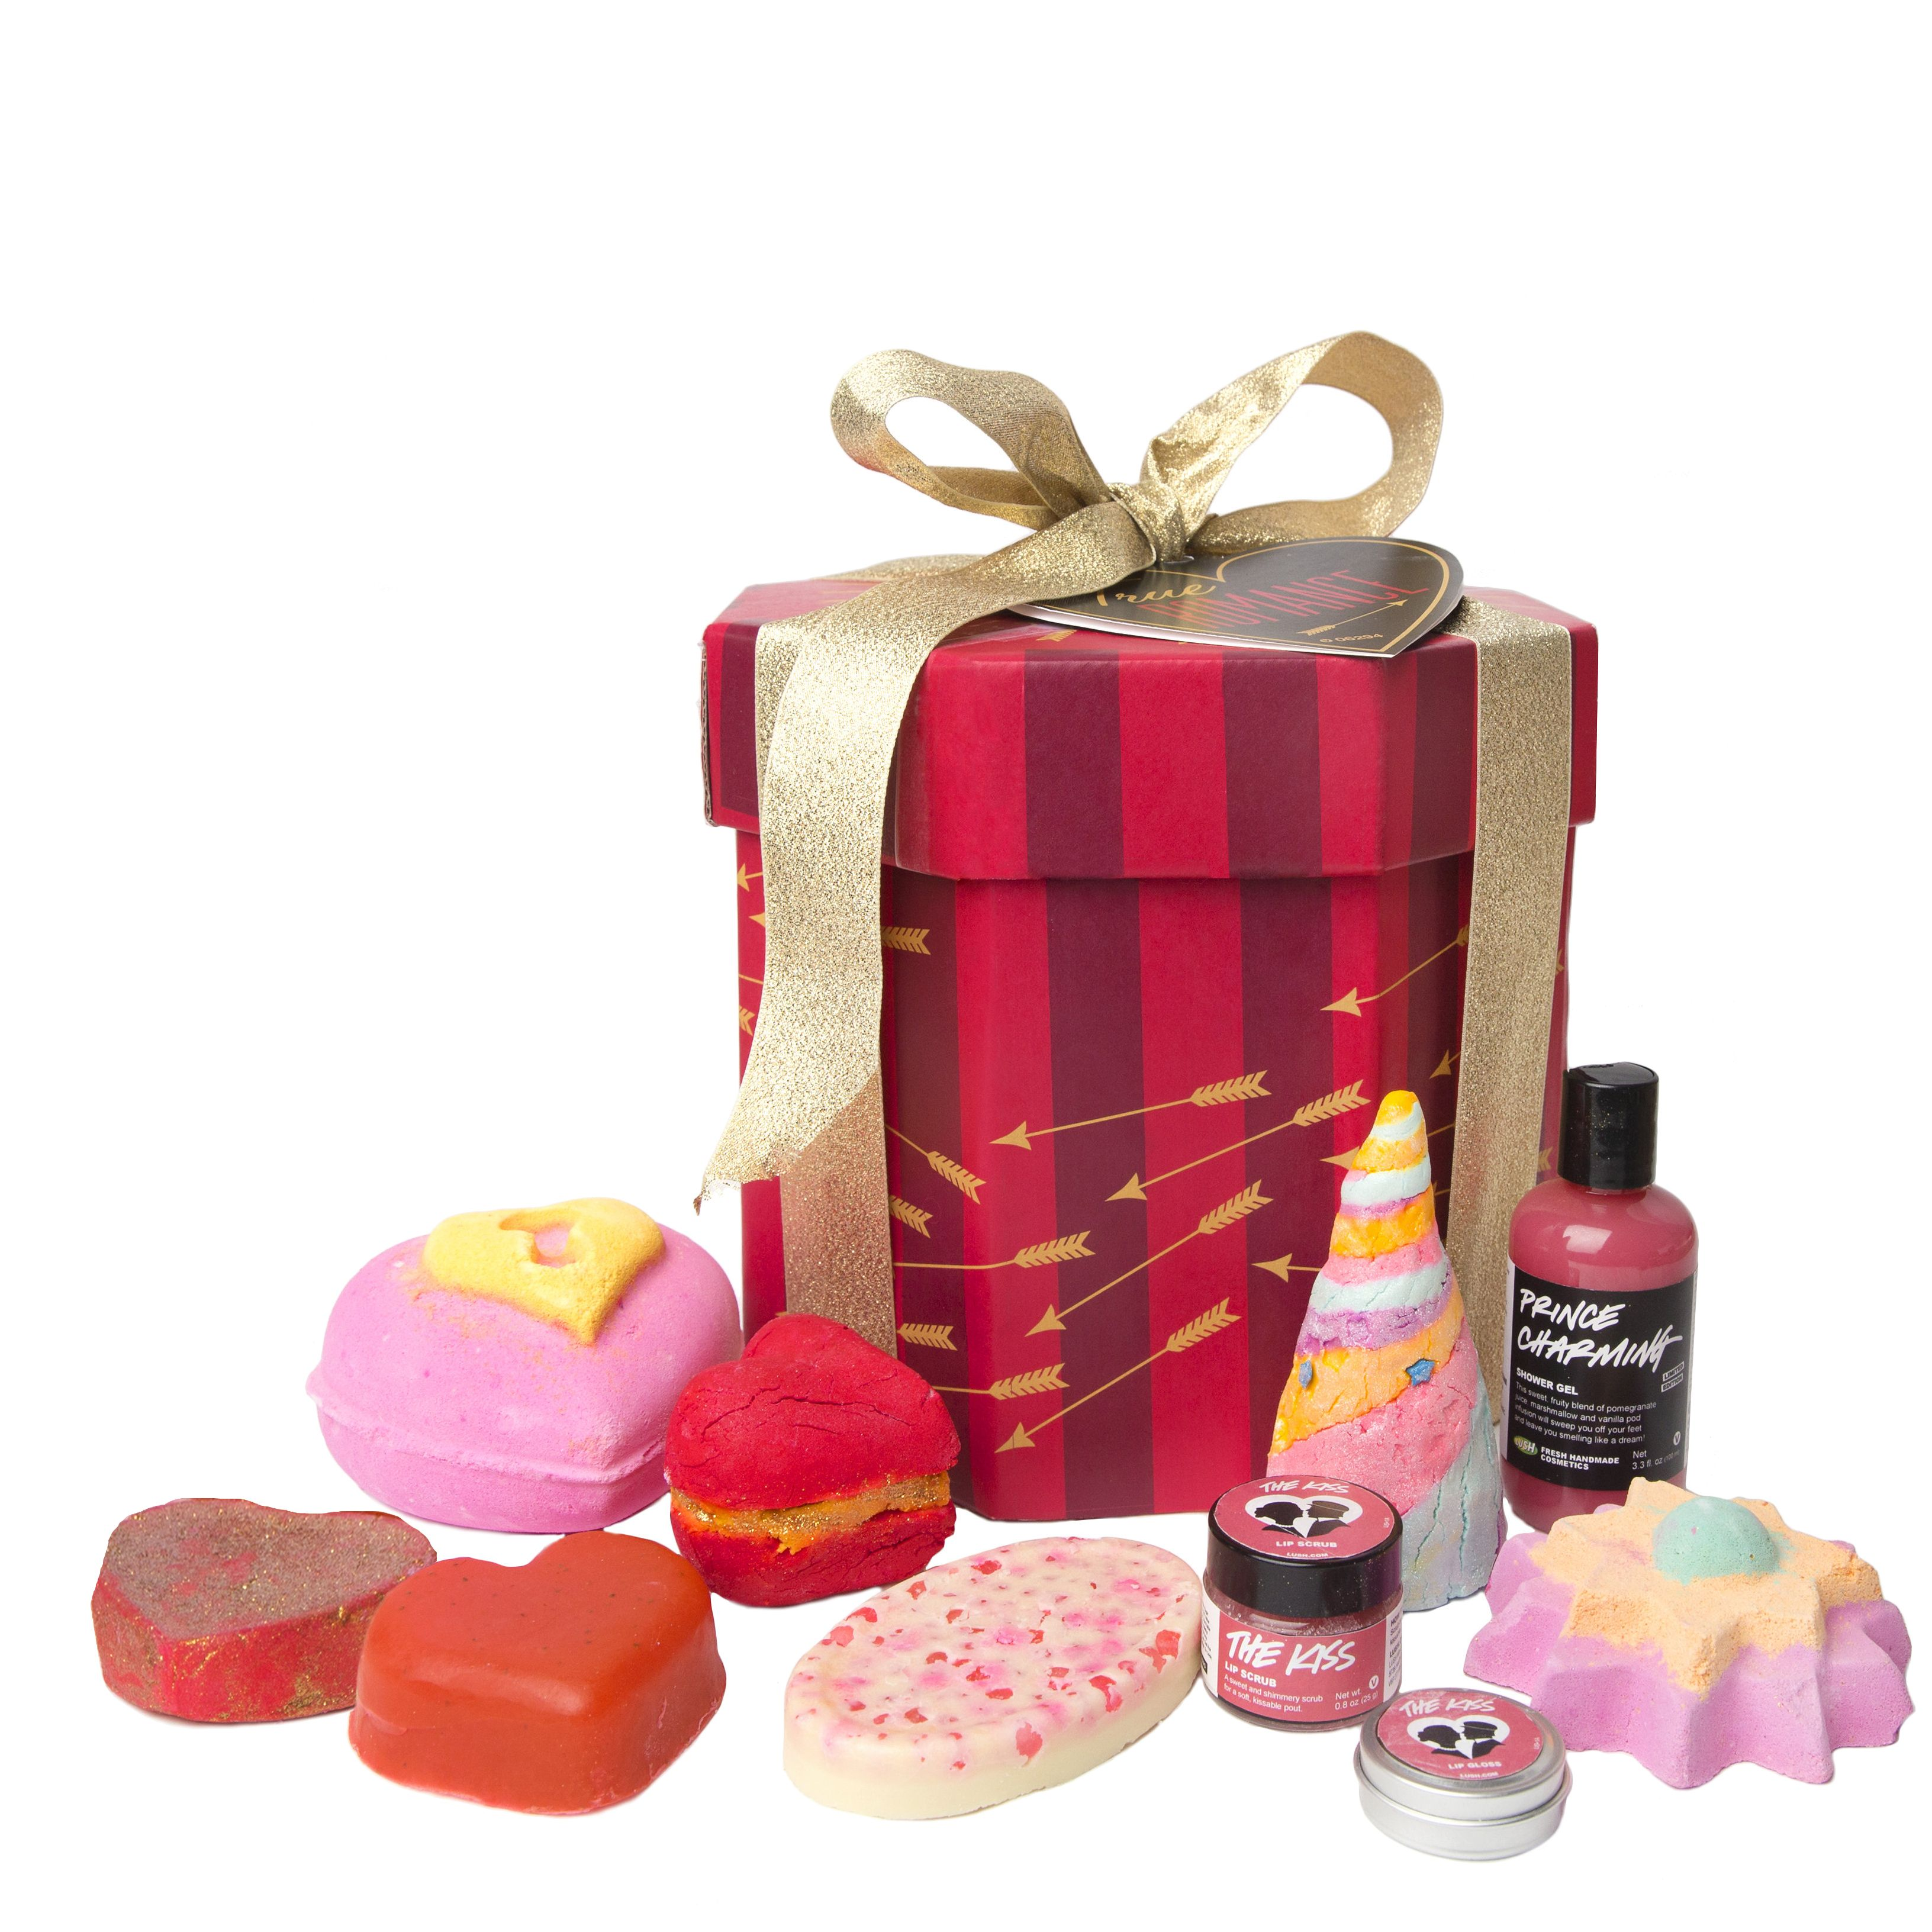 Lush Cosmetics - True Romance Gift - If you're looking to make a big impression this Valentine's Day, True Romance is the gift for you!